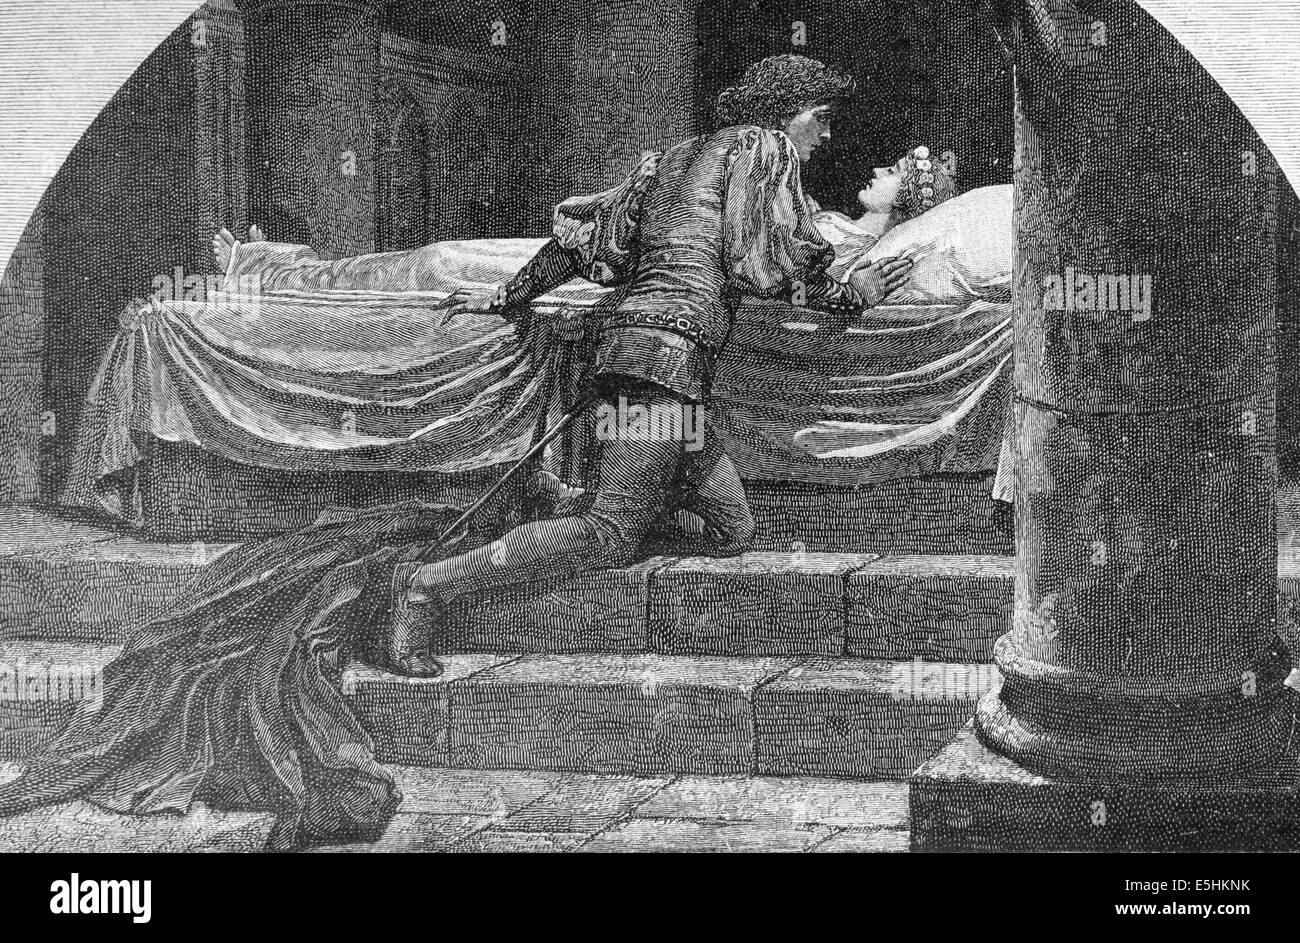 the importance of death in romeo and juliet by william shakespeare The theme of death in shakespeare's romeo and juliet often times, authors use the theme of death throughout their works this seems to be true of william shakespeare in romeo and juliet.